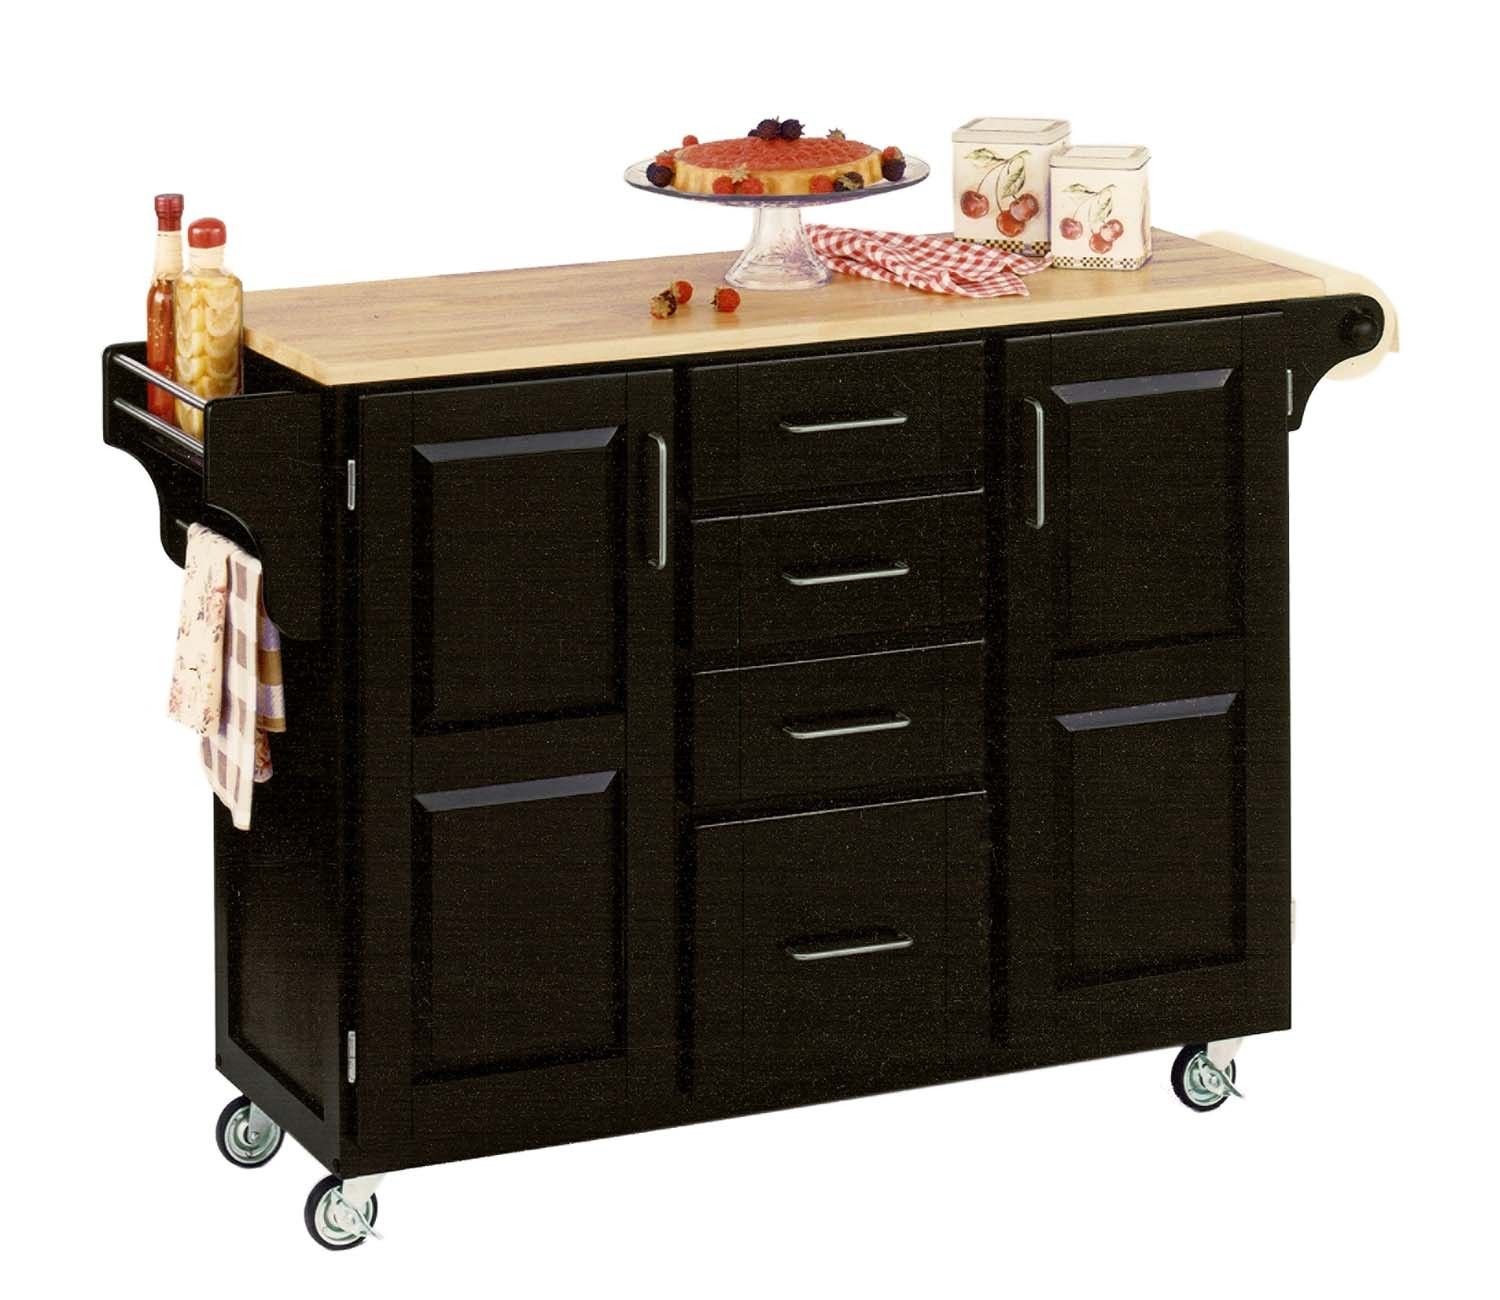 Rollable Kitchen Cart or Kitchen Island from Home Styles available